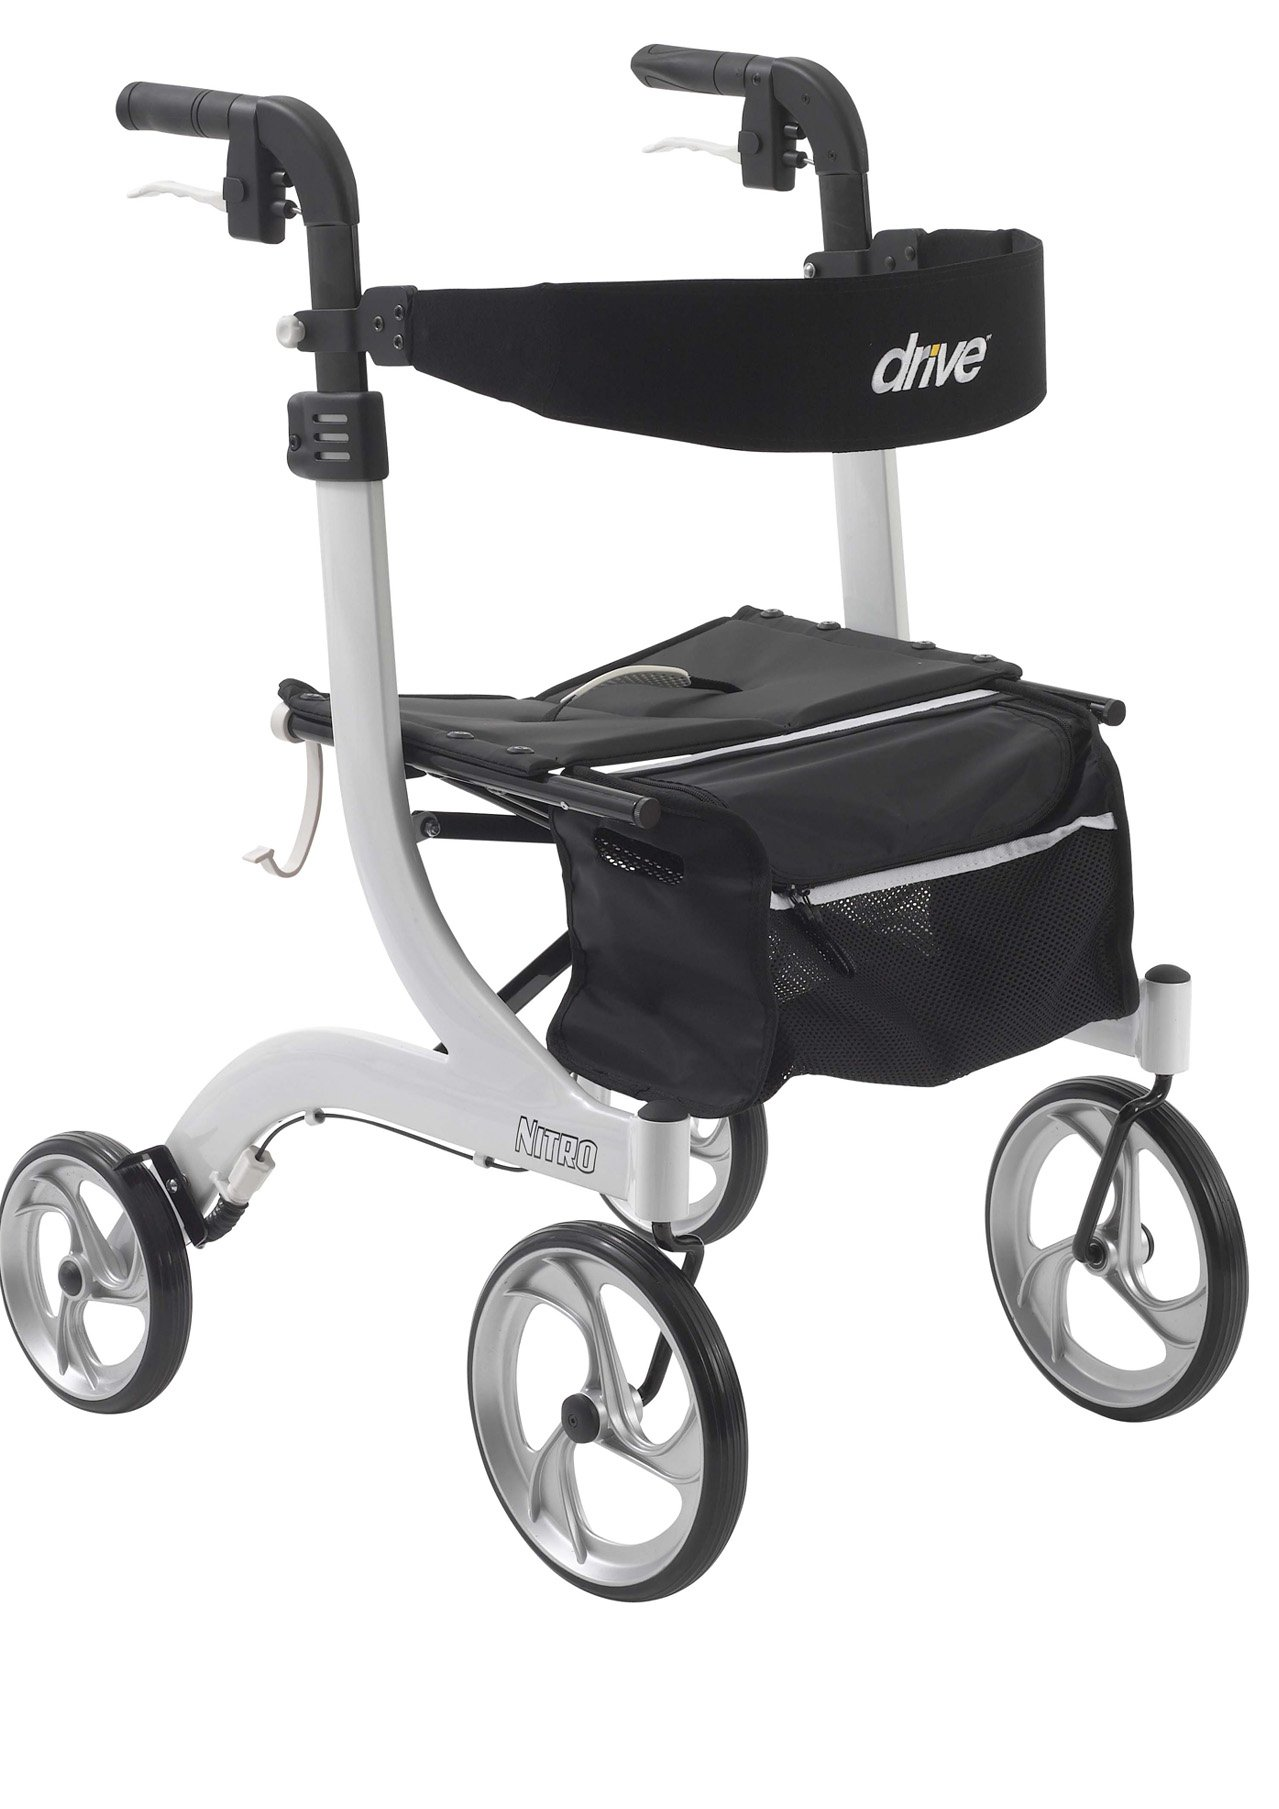 Drive Medical Nitro Euro Style White Rollator Walker, White by Drive Medical